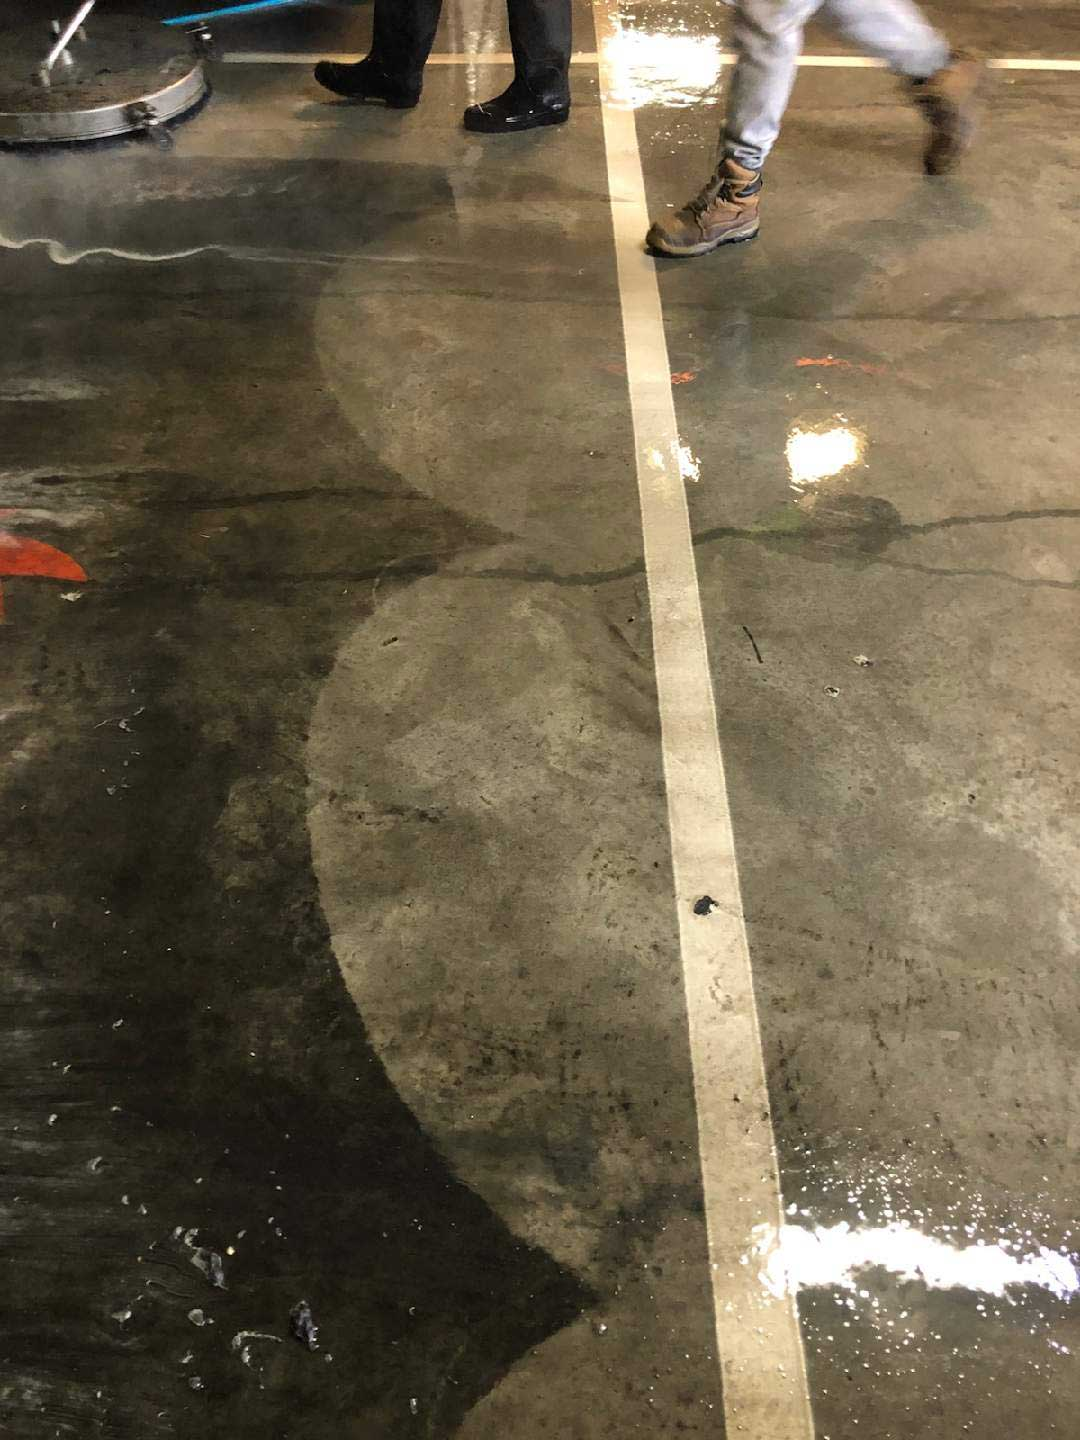 Carpark Concrete Cleaning Collingwood   Melbourne   Performance Cleaning